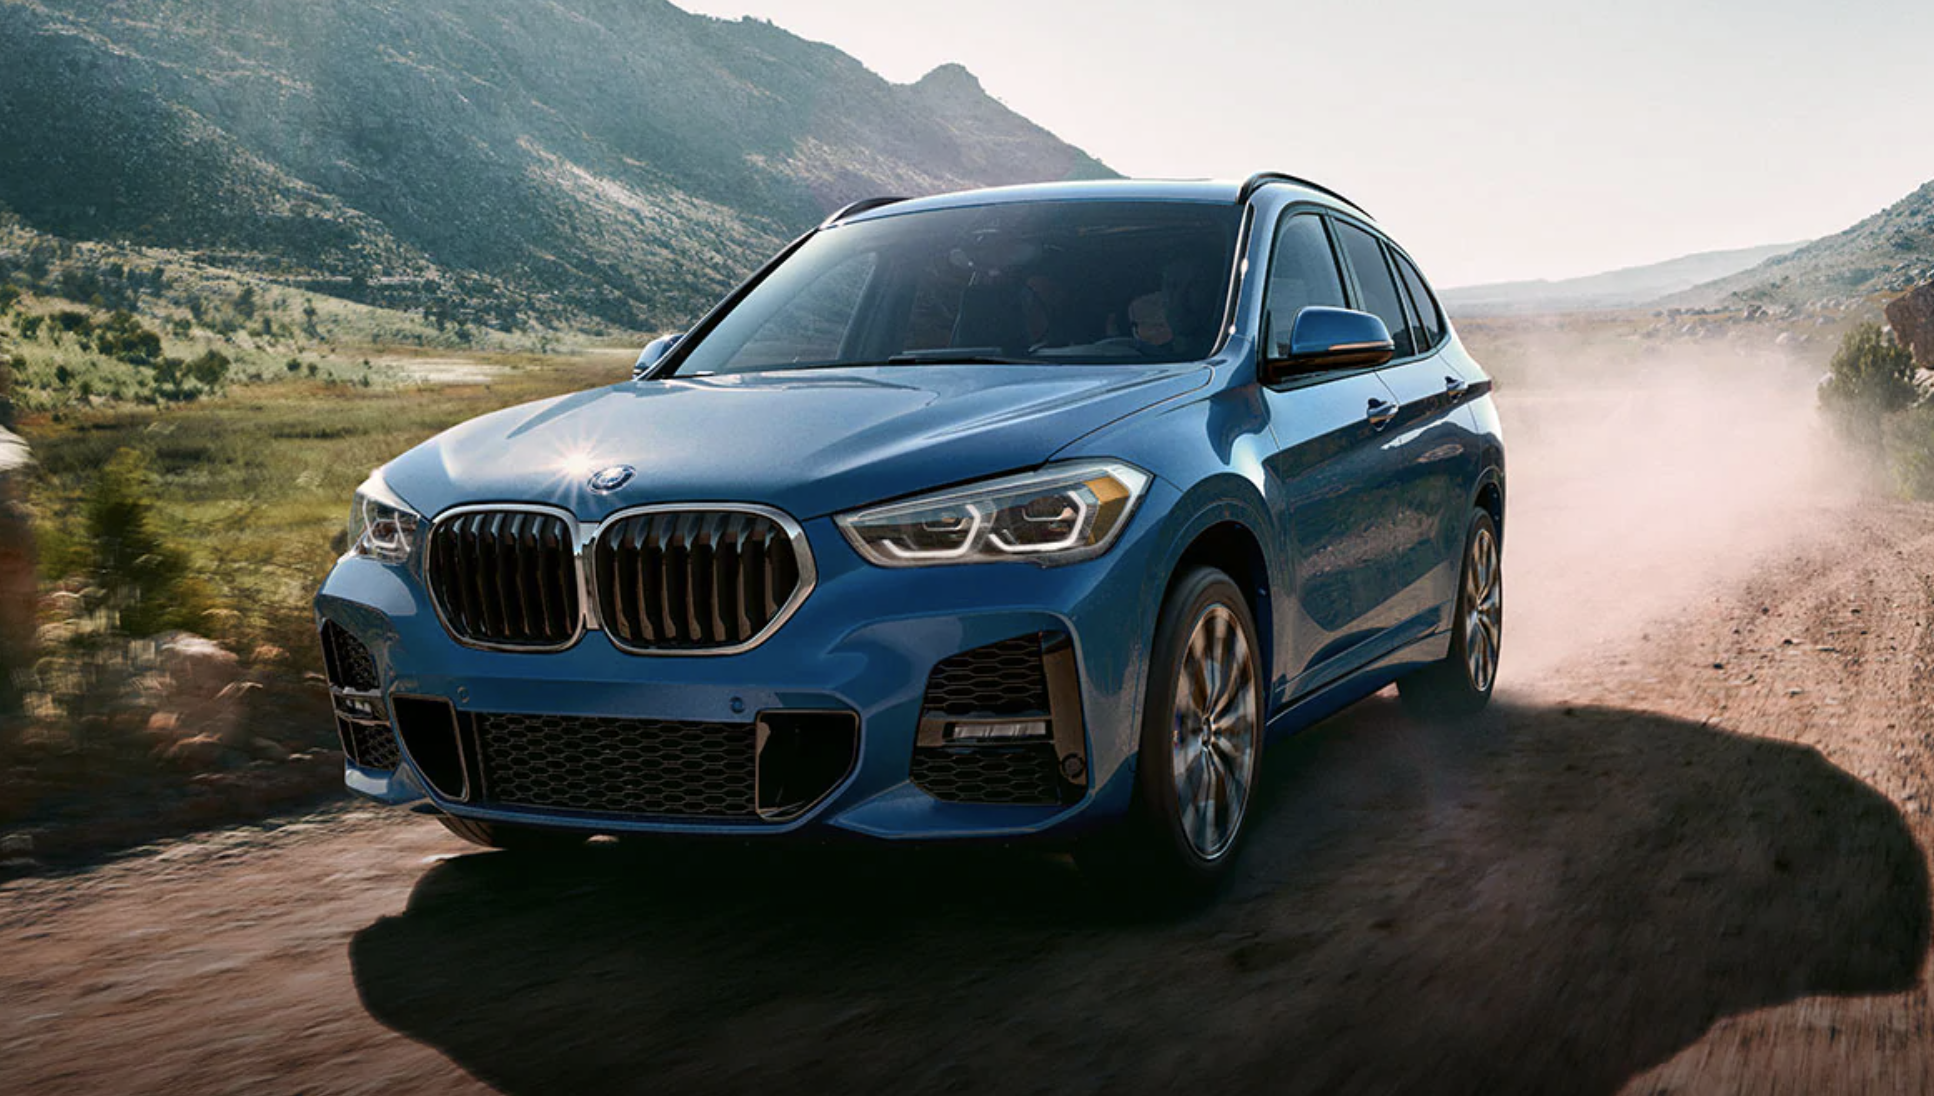 2021 Bmw X1 Review Pricing And Specs